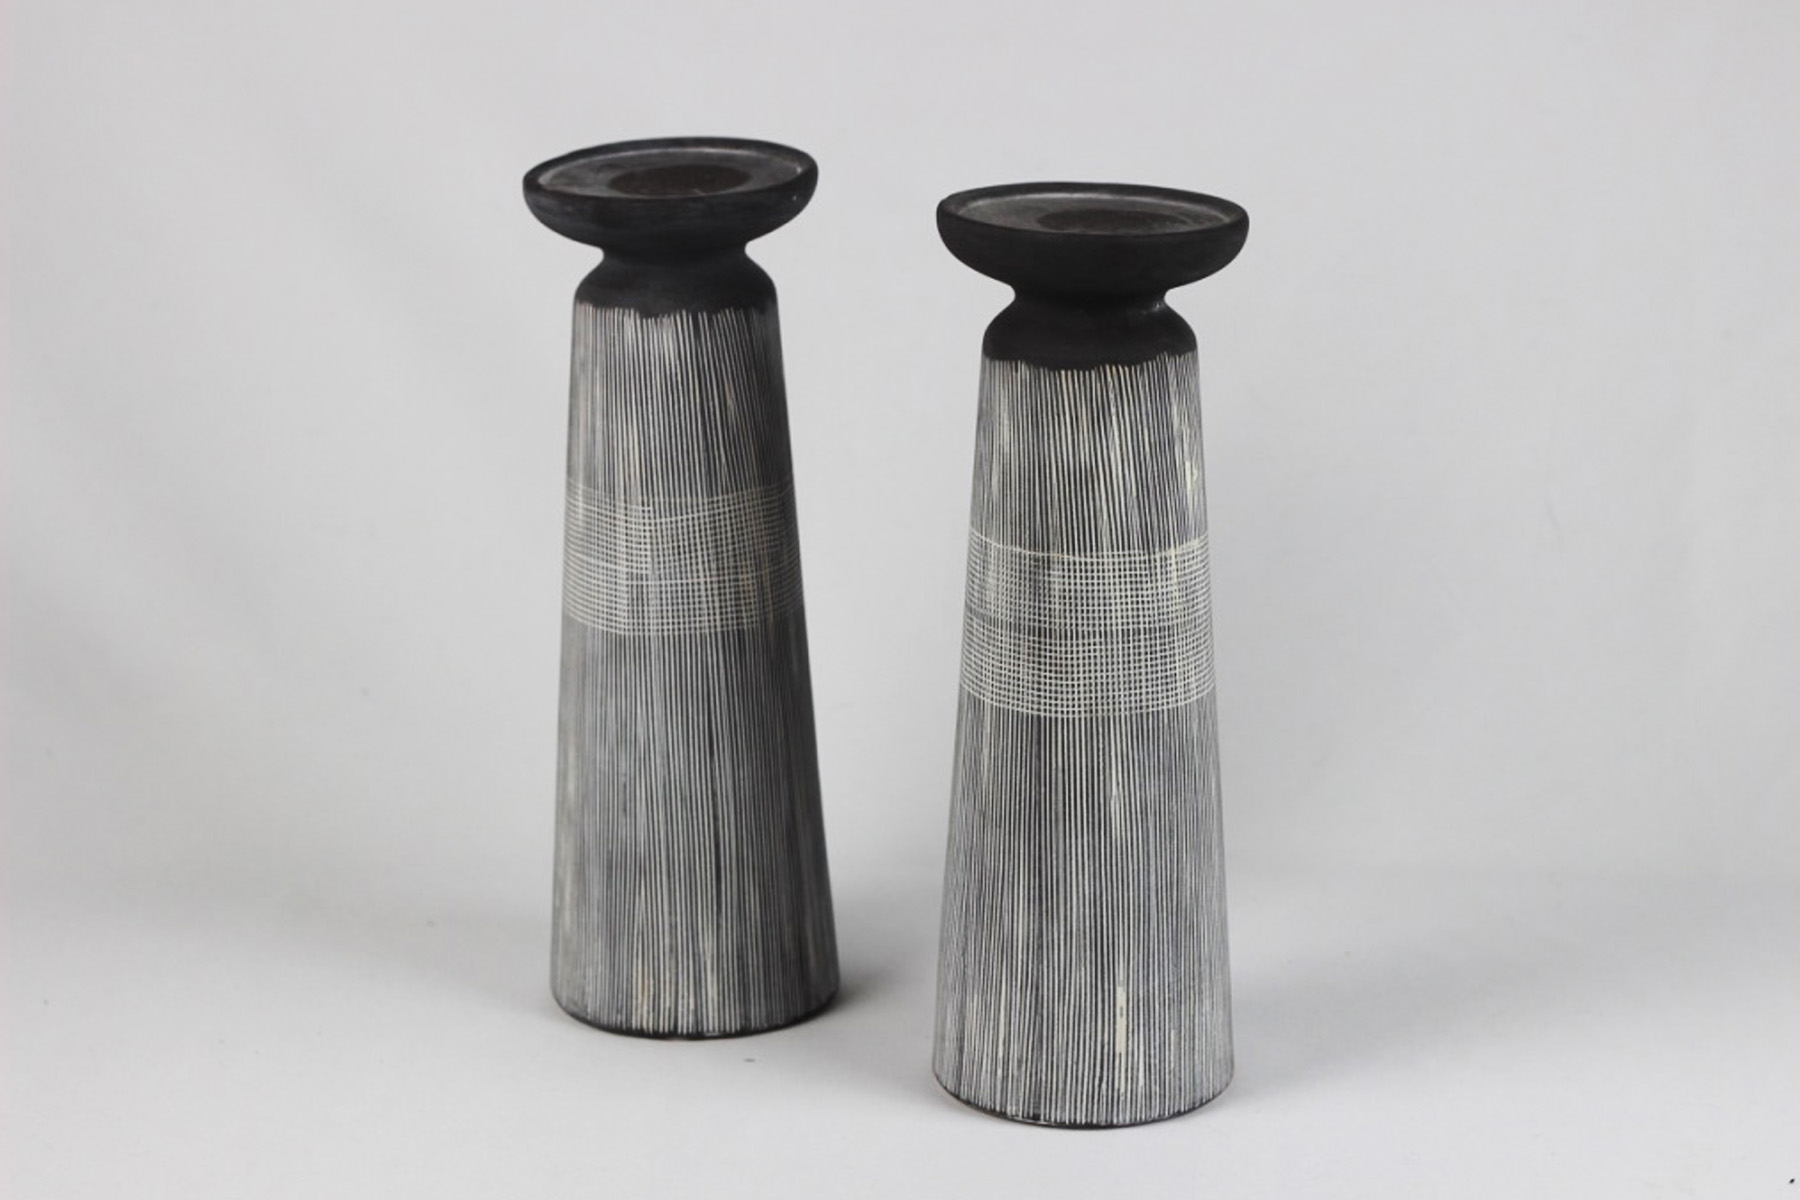 Gray and White Candle Holders - Scavenged Vintage Rentals